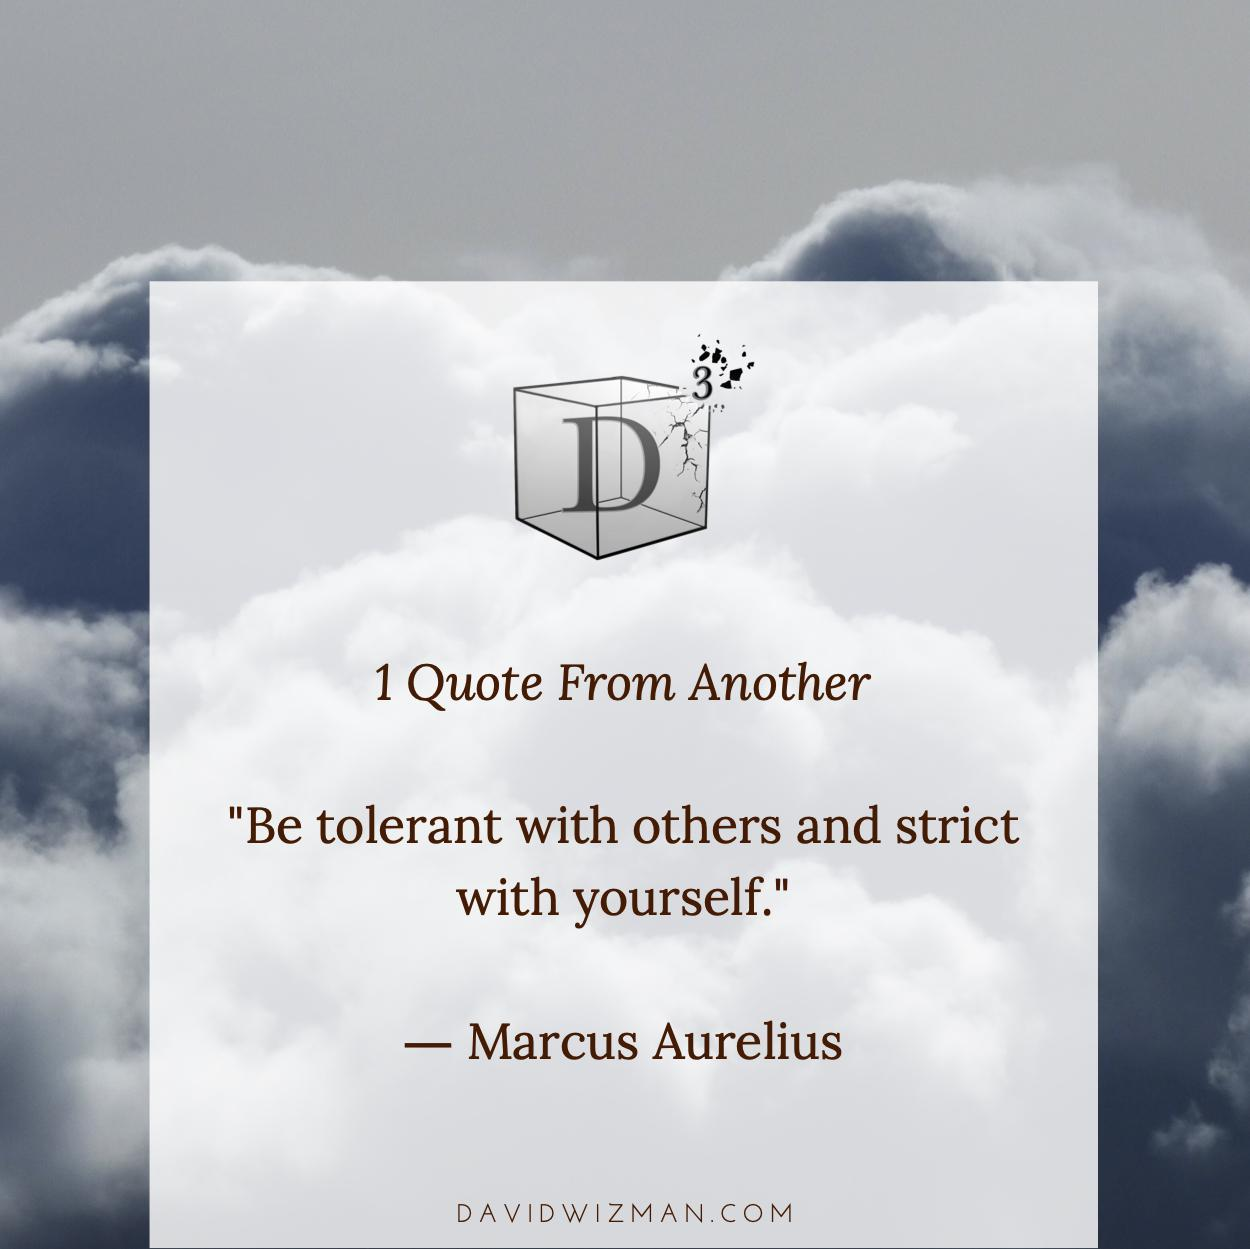 """Be tolerant with others and strict with yourself'- Marcus Aurelius [1250 × 1249]"